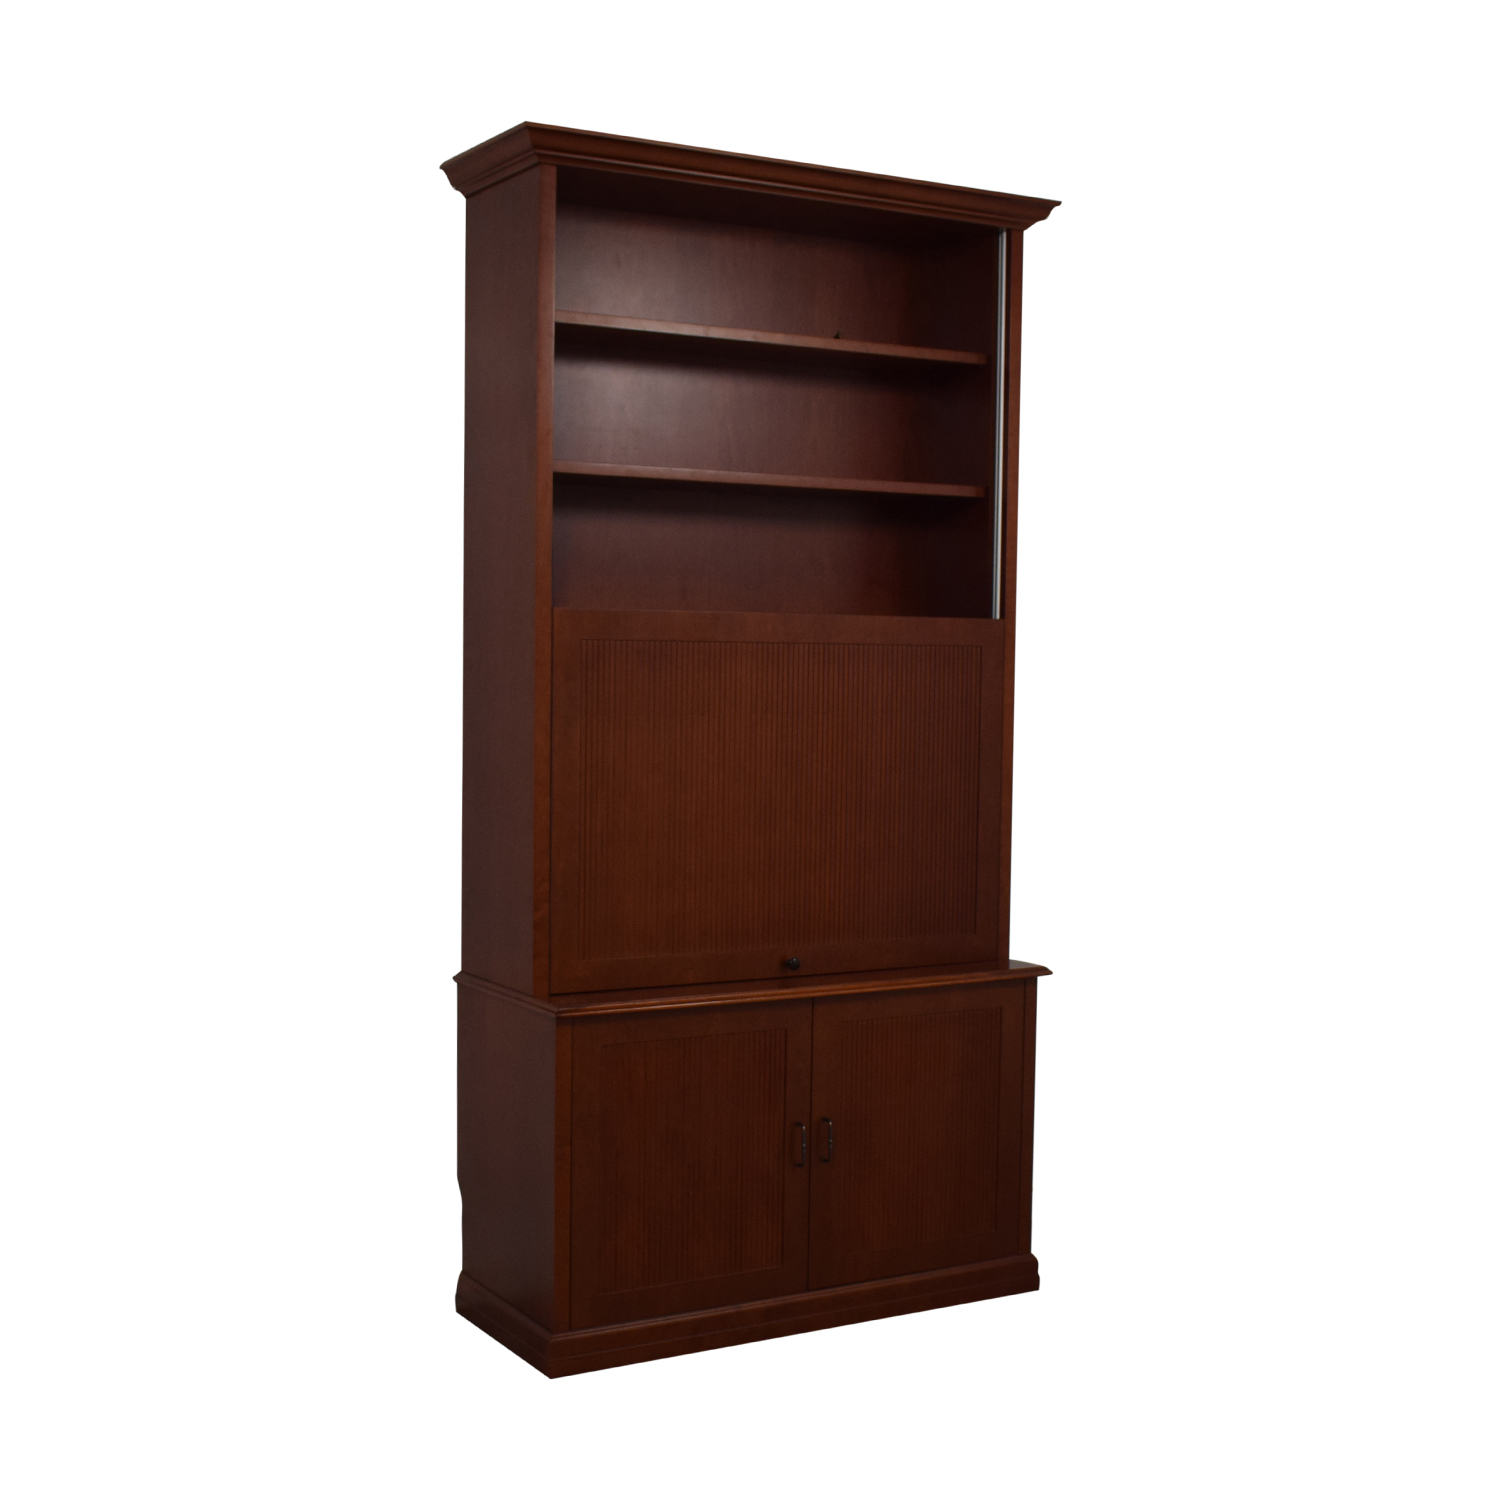 Manhattan Home Design Manhattan Home Design Bookshelf and TV Unit dimensions